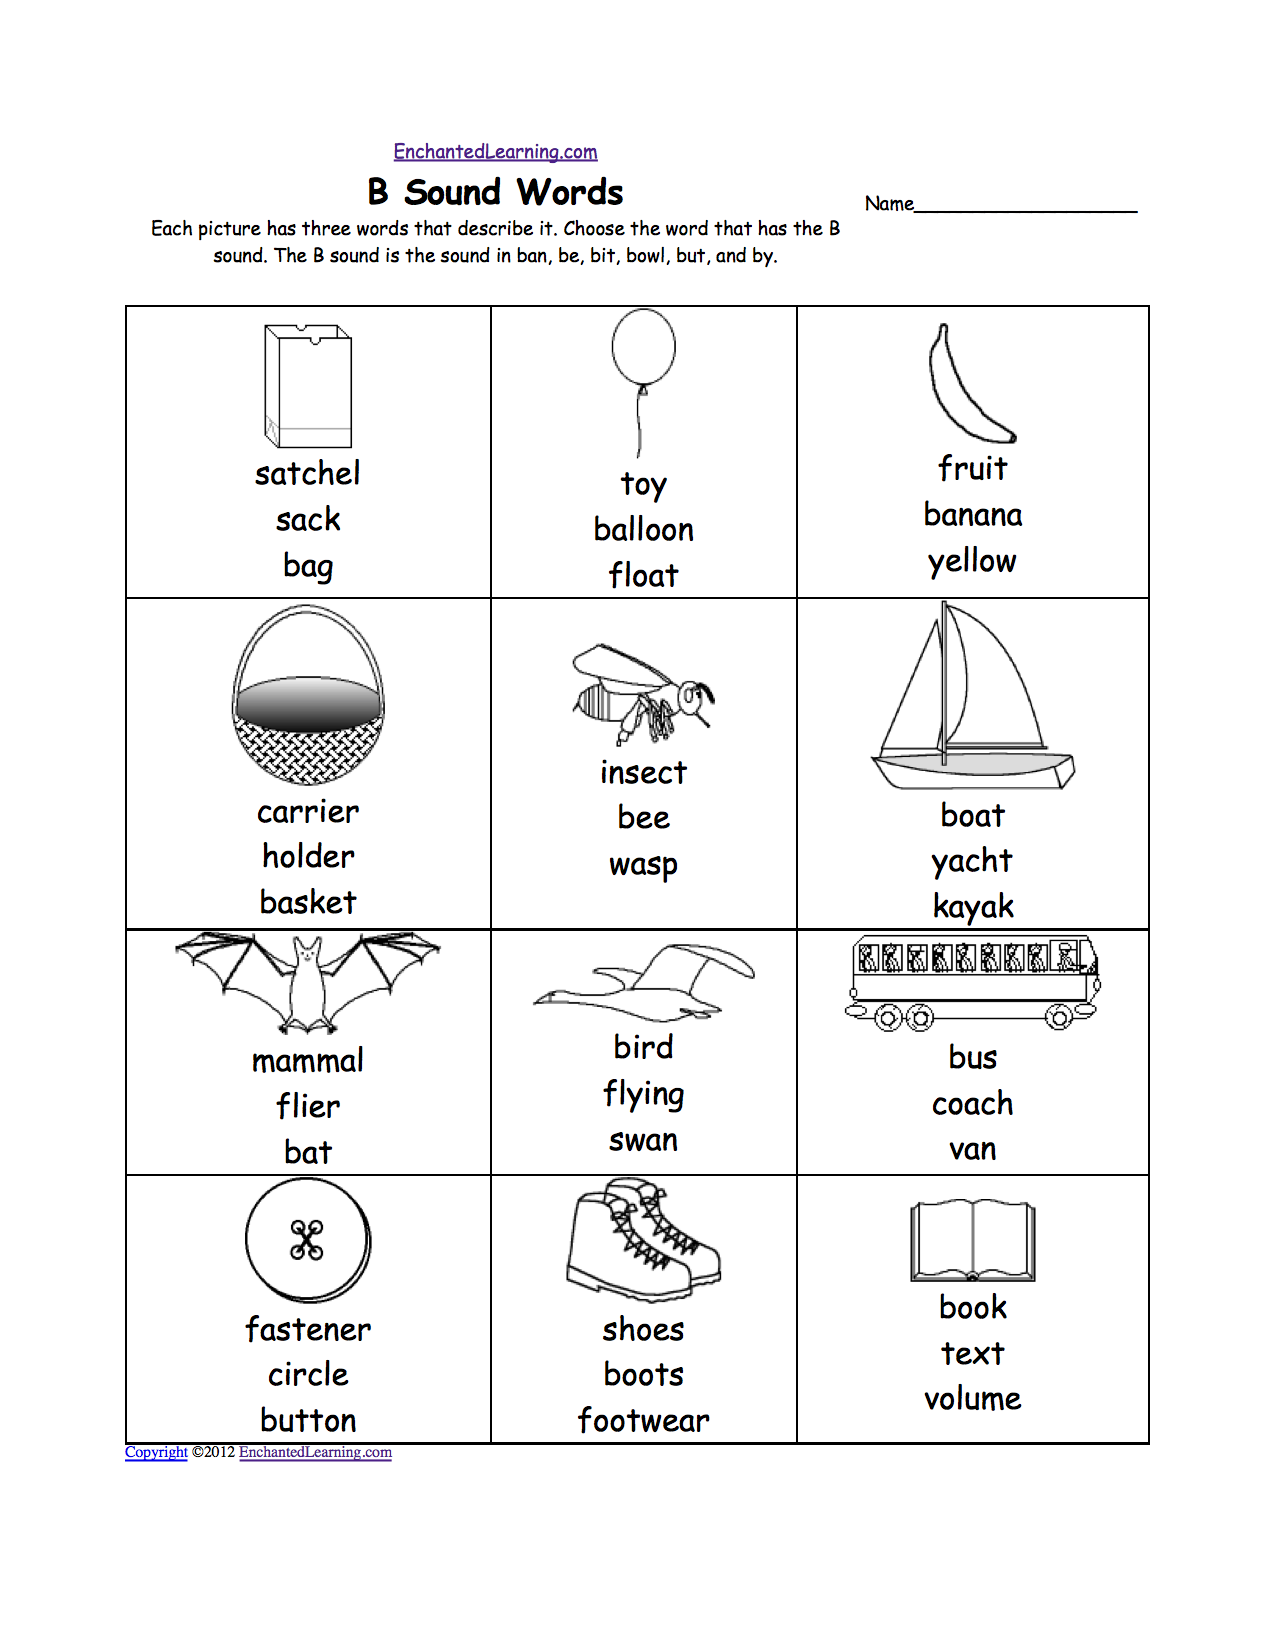 Aldiablosus  Marvelous Phonics Worksheets Multiple Choice Worksheets To Print  With Foxy Quotbquot Sound Phonics Worksheet Multiple Choice Each Picture Has Three Words That Describe It Choose The Word That Has A Quotbquot Sound The Quotbquot Sound Is The Sound  With Astounding Rhetorical Devices Worksheet Also Soaps Worksheet In Addition Adding Fractions Super Teacher Worksheets And Worksheet Images As Well As Punnett Square Blood Type Worksheet Additionally Simplifying Rational Expressions Worksheet Algebra  From Enchantedlearningcom With Aldiablosus  Foxy Phonics Worksheets Multiple Choice Worksheets To Print  With Astounding Quotbquot Sound Phonics Worksheet Multiple Choice Each Picture Has Three Words That Describe It Choose The Word That Has A Quotbquot Sound The Quotbquot Sound Is The Sound  And Marvelous Rhetorical Devices Worksheet Also Soaps Worksheet In Addition Adding Fractions Super Teacher Worksheets From Enchantedlearningcom